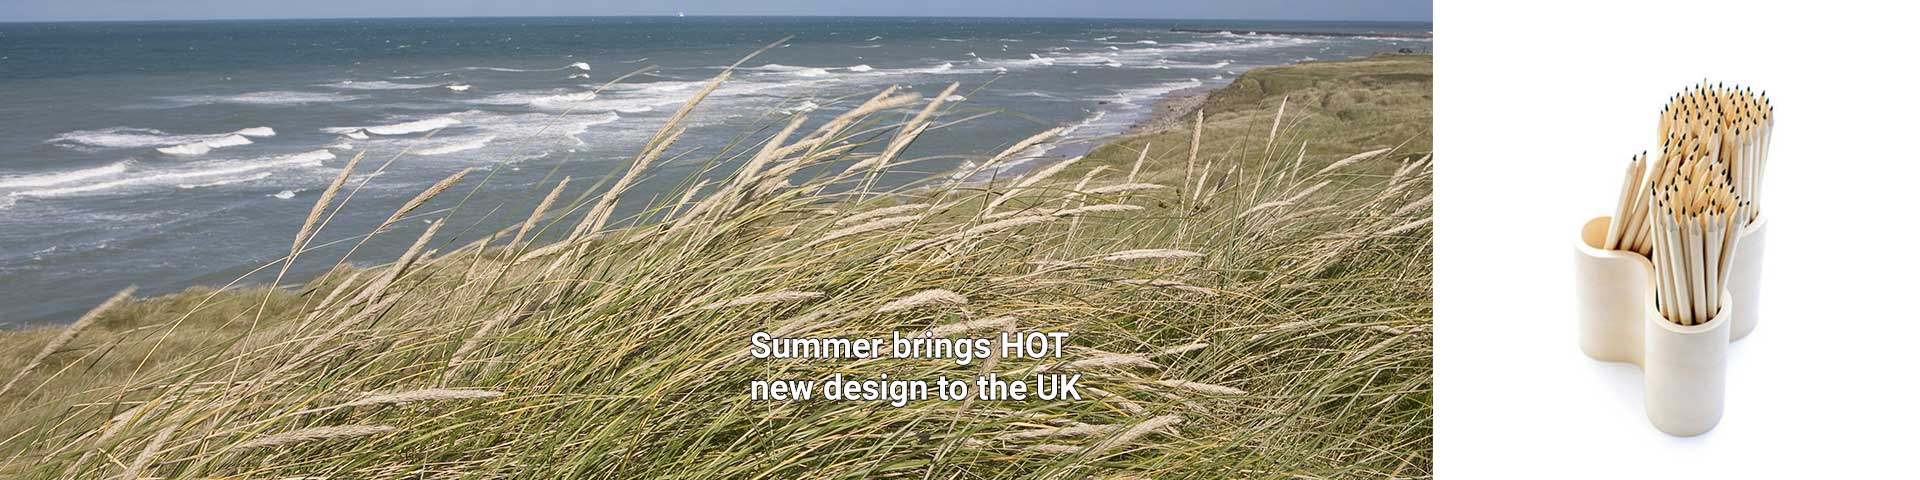 summer brings hot new designs